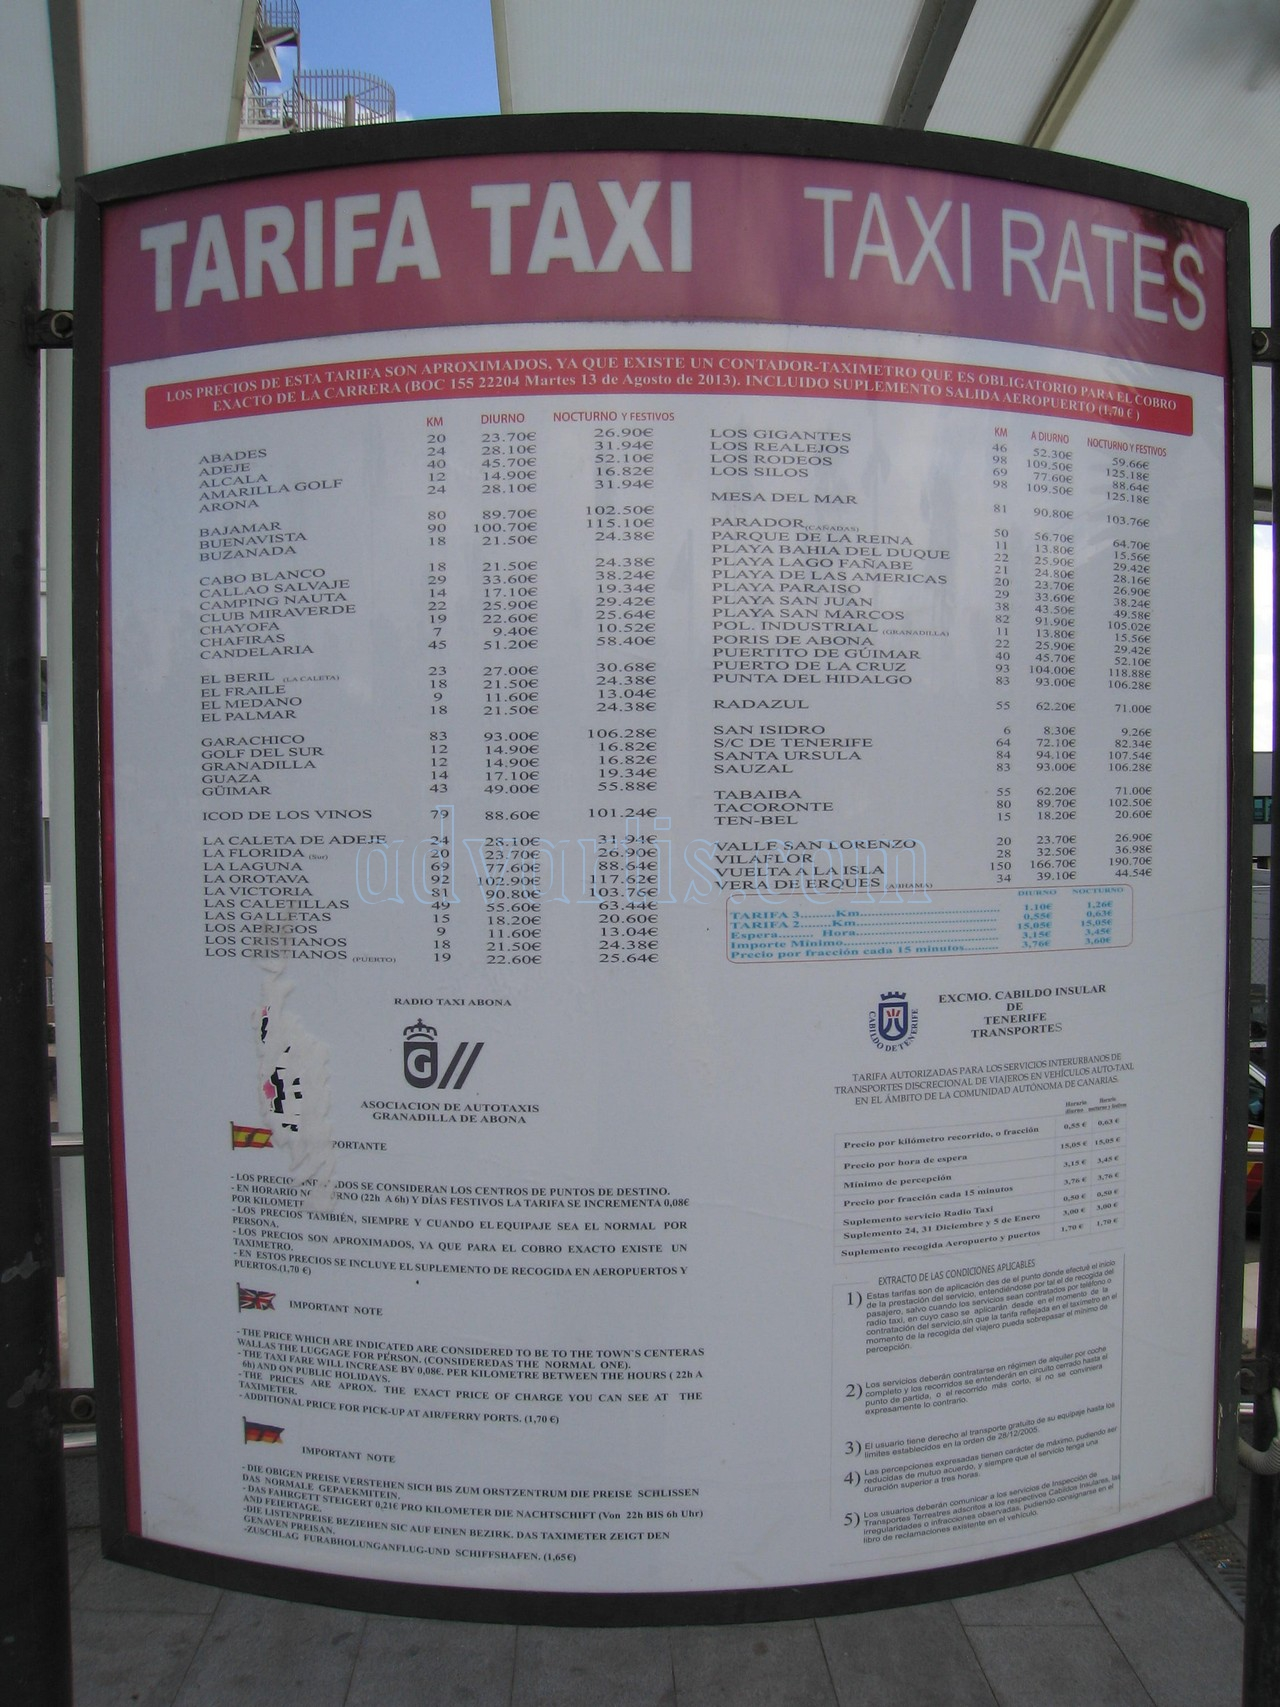 Tenerife south airport taxi rates